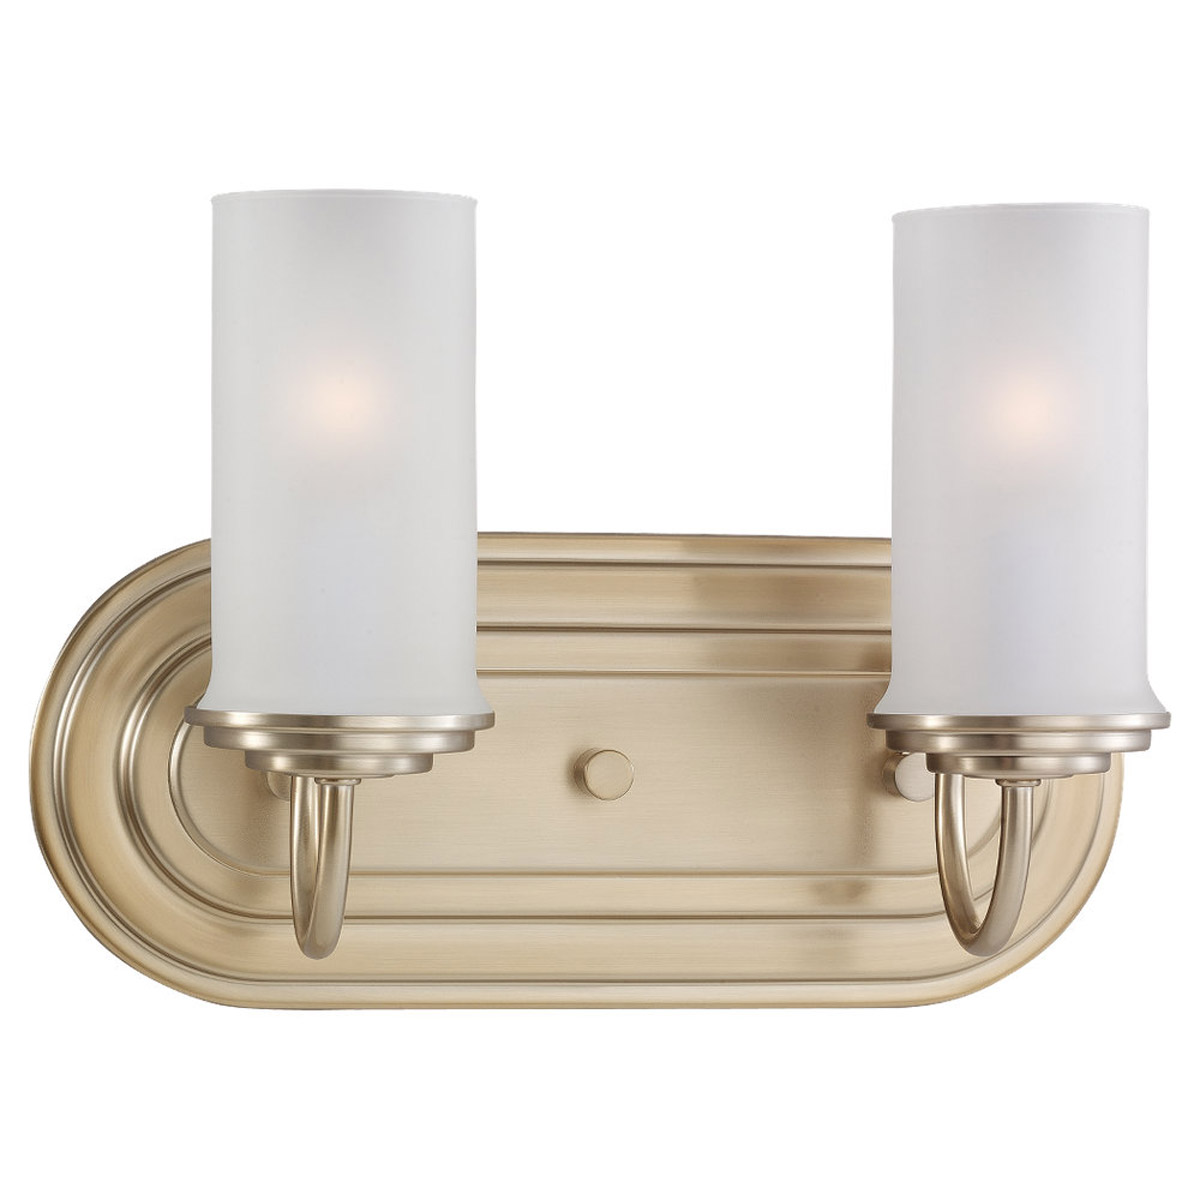 Sea Gull Lighting Wellington 2 Light Wall / Bath / Vanity in Satin Bronze 44656-848 photo